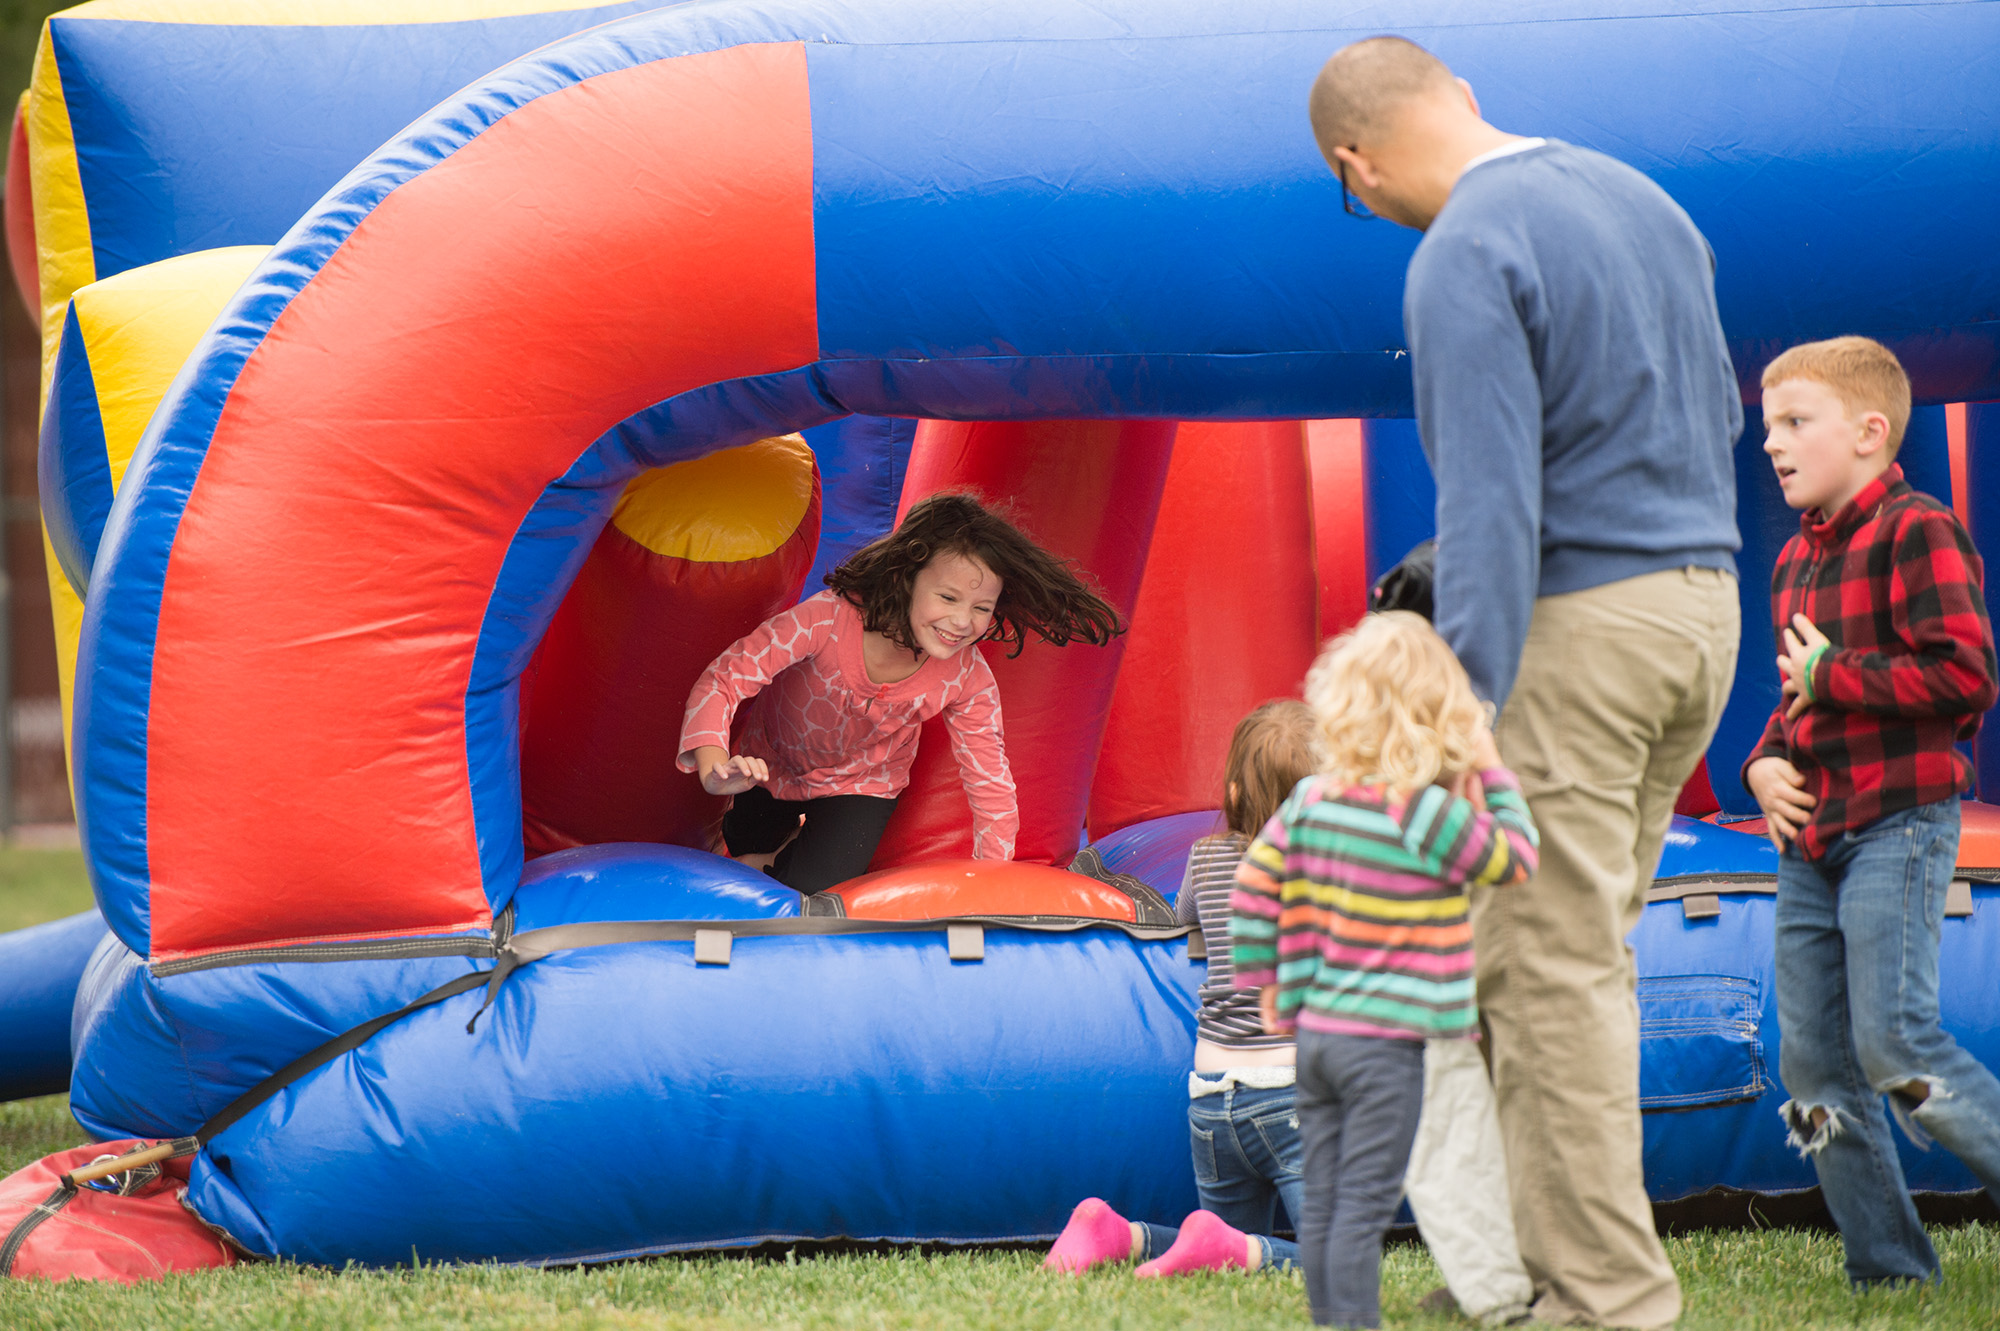 The college hosted a kid fest with inflatables and face painting for alumni and the Hesston Community.